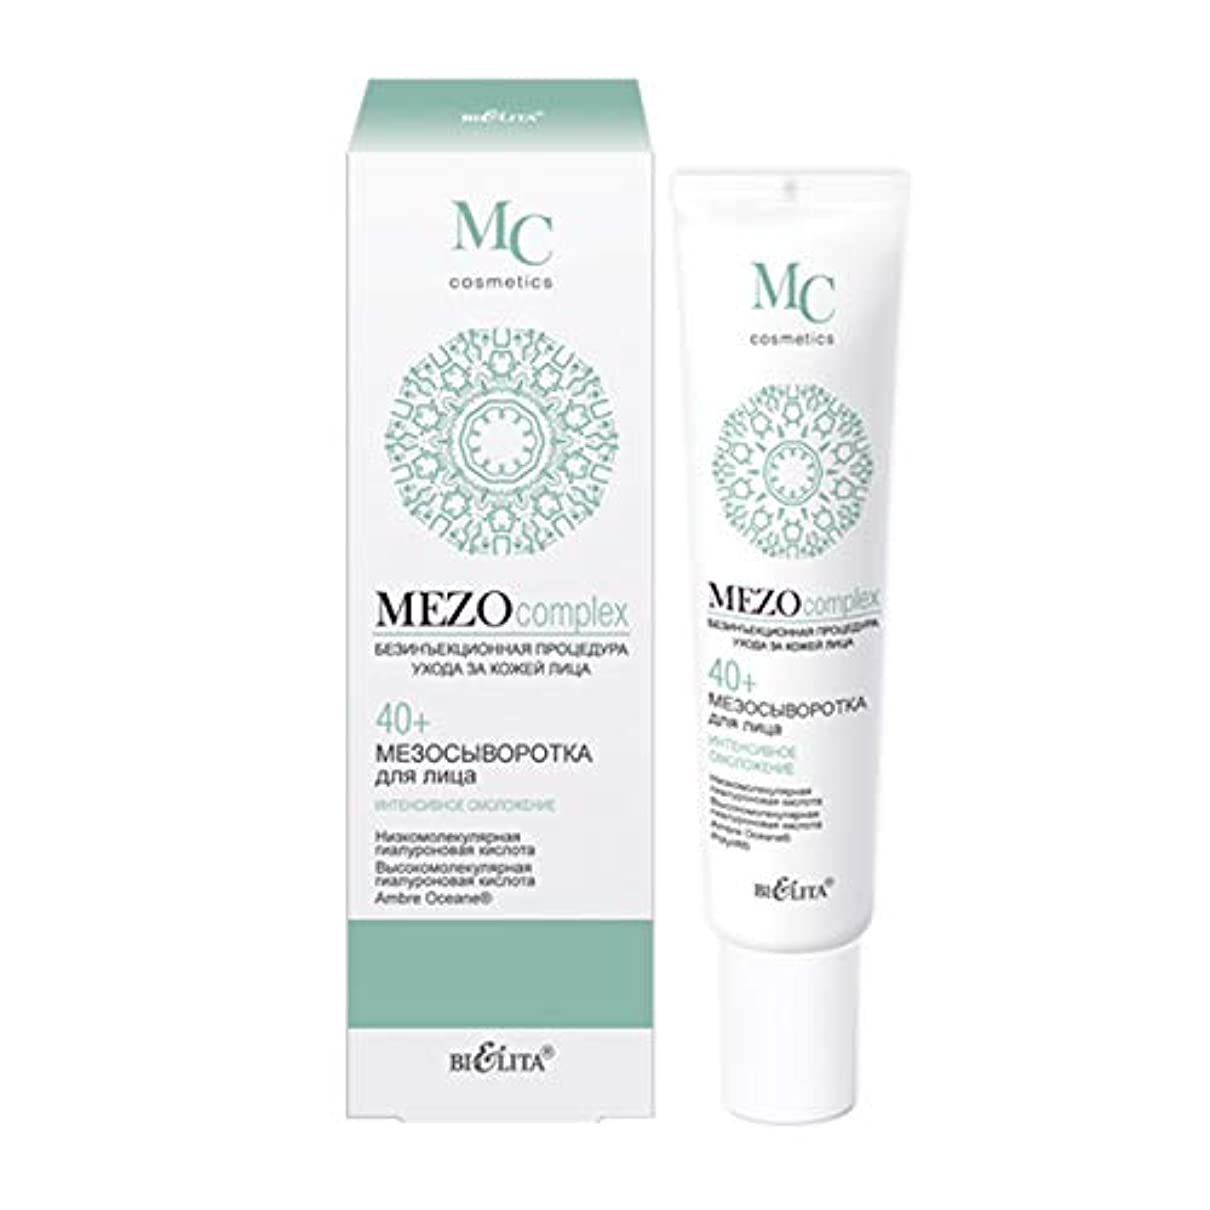 枯渇利益結婚Mezo complex Serum Intensive Rejuvenation 40+ | Non-injection facial skin care procedure | Ambre Oceane | Polylift...